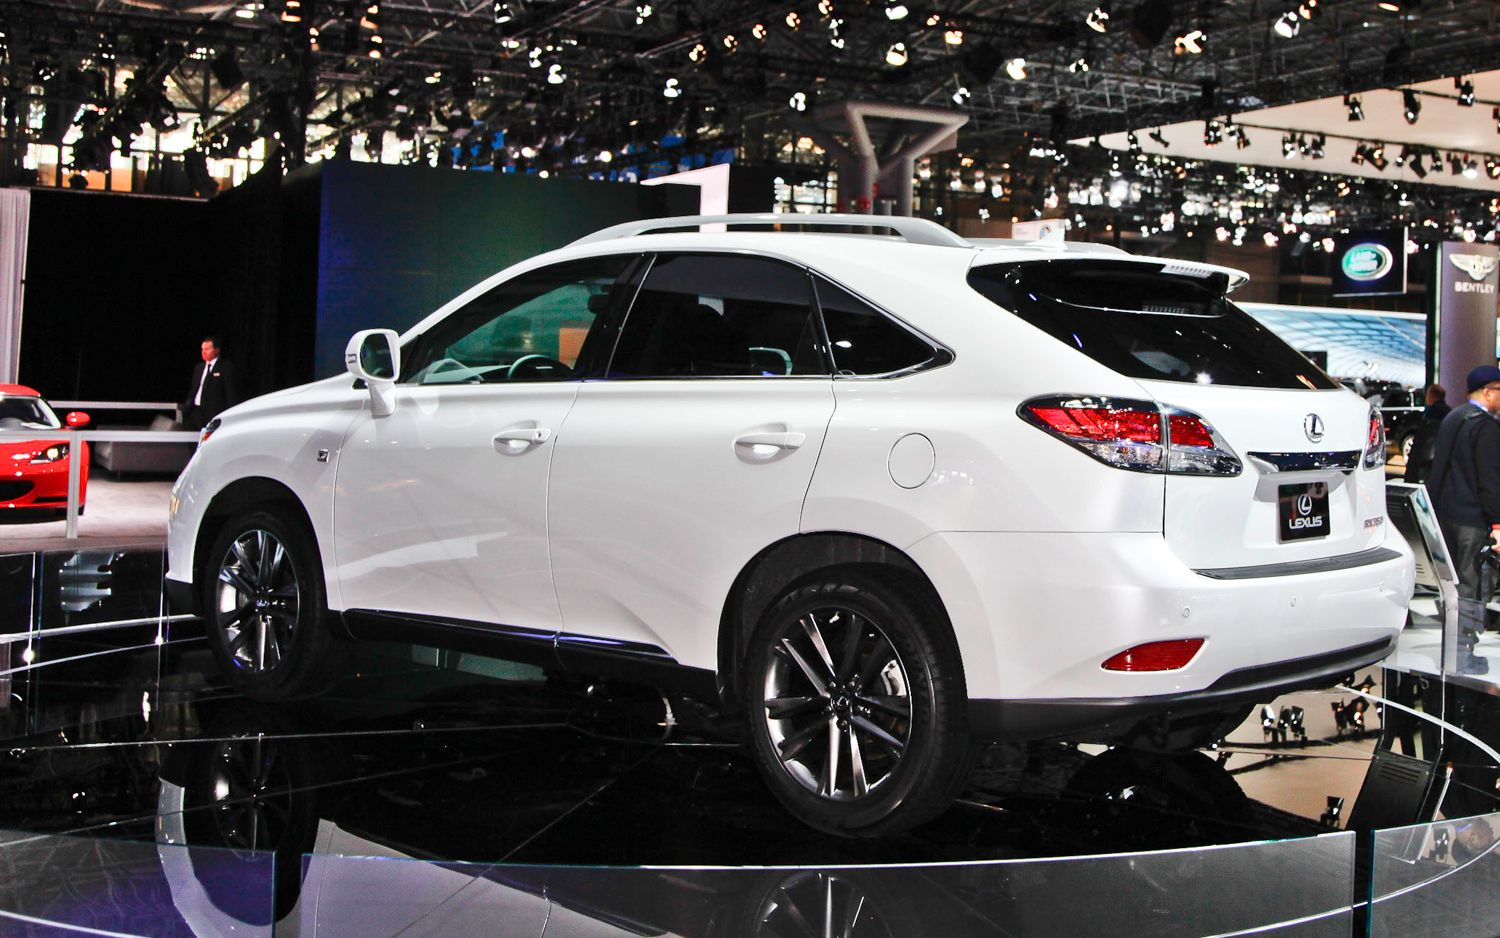 Read on to learn more on the 2013 lexus rx 350 f sport set to debut at the 2012 new york auto show brought to you by the automotive experts at motor trend